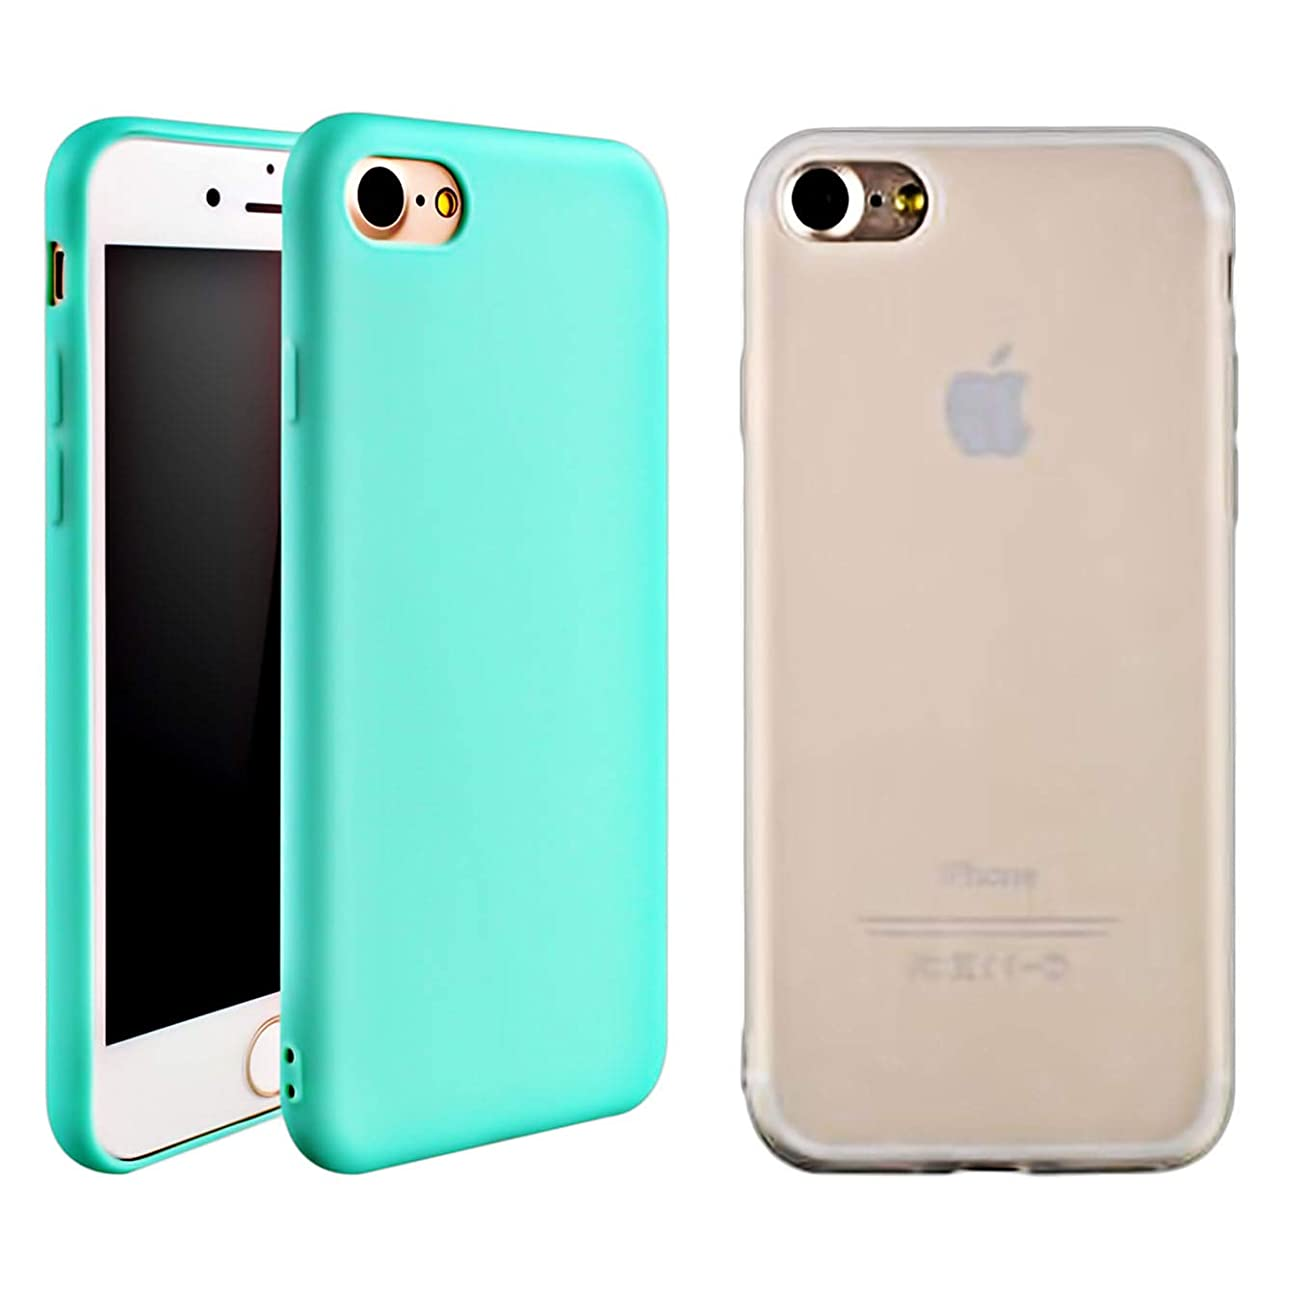 iEugen Protection Slim Cover for iPhone 6 / 6S. Shockproof Shell Full Body Coverage DropProof Drop Protection Durable Pocket Protector Cases not Bulky for iPhone 6/6S - Clear+Teal